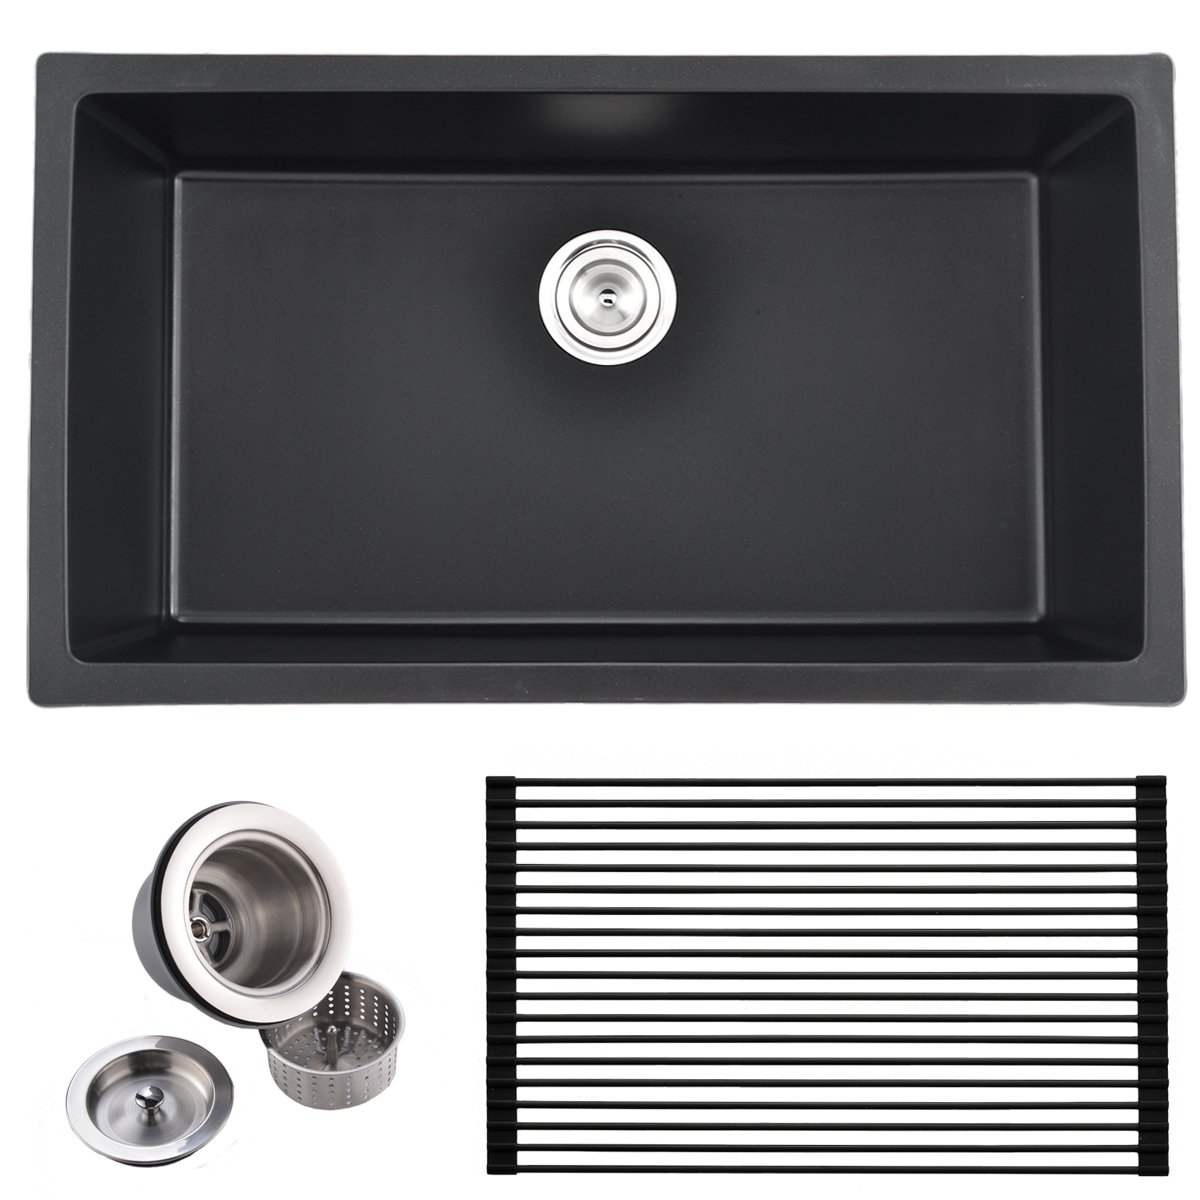 Best Commercial 31 Inch Handmade Single Bowl Undermount Drop in Black Onyx Granite Kitchen Sink, Included Dish Rack and Drain Assembly.